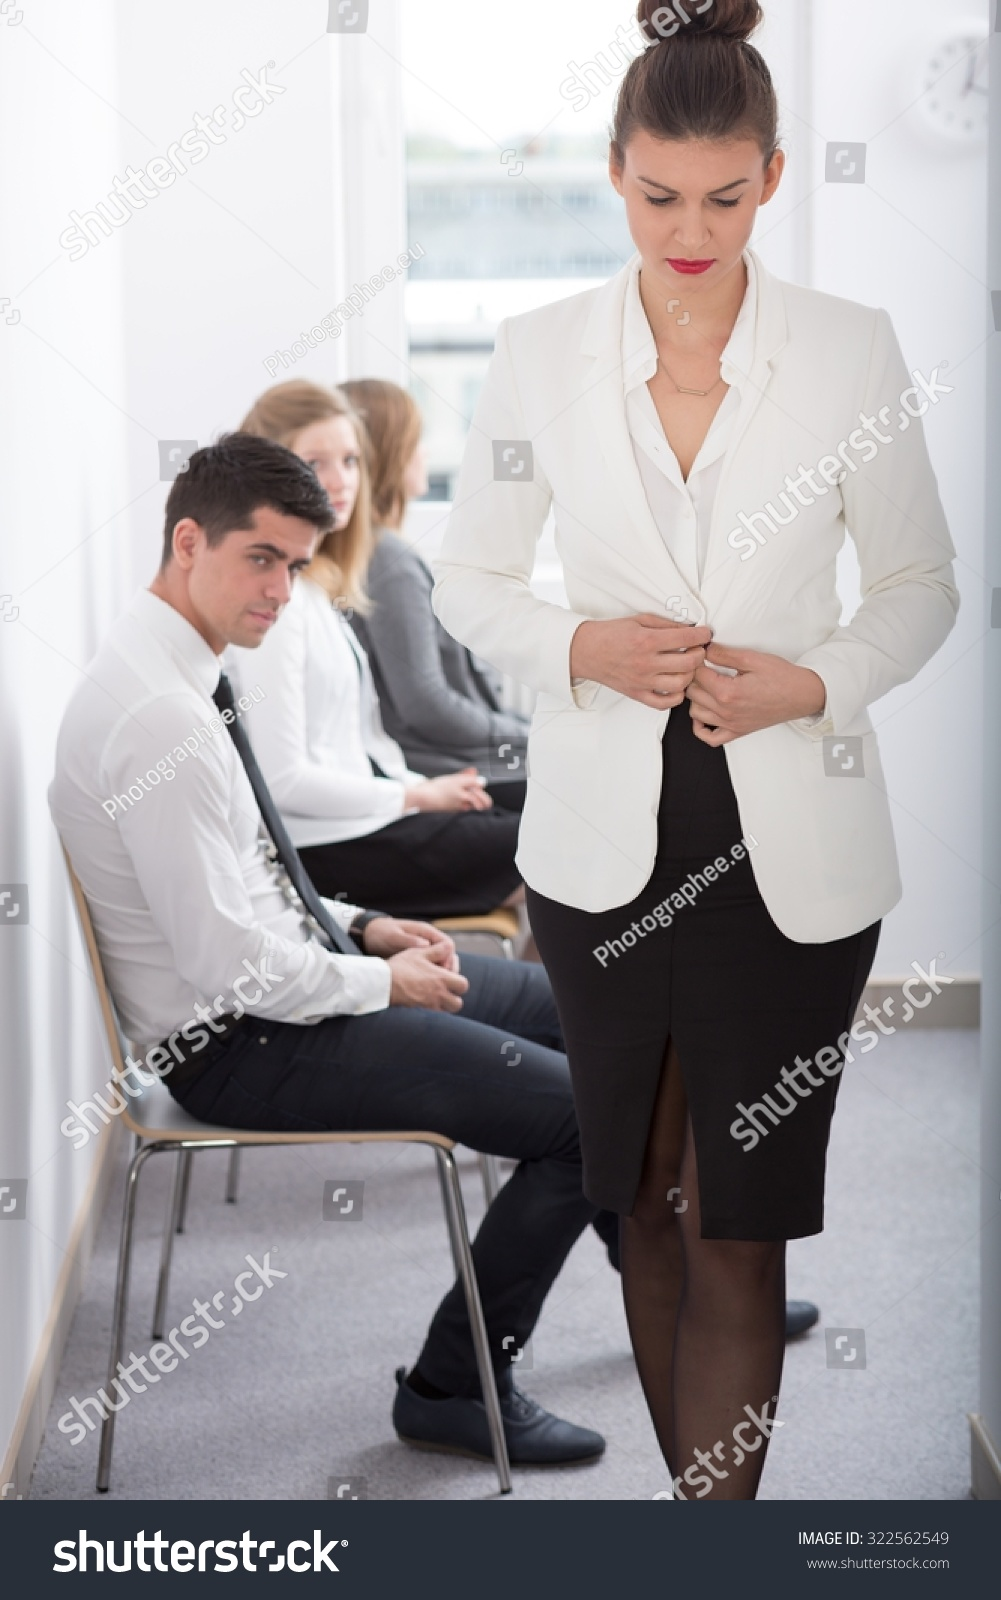 young sad w after bad job interview stock photo  after bad job interview preview save to a lightbox